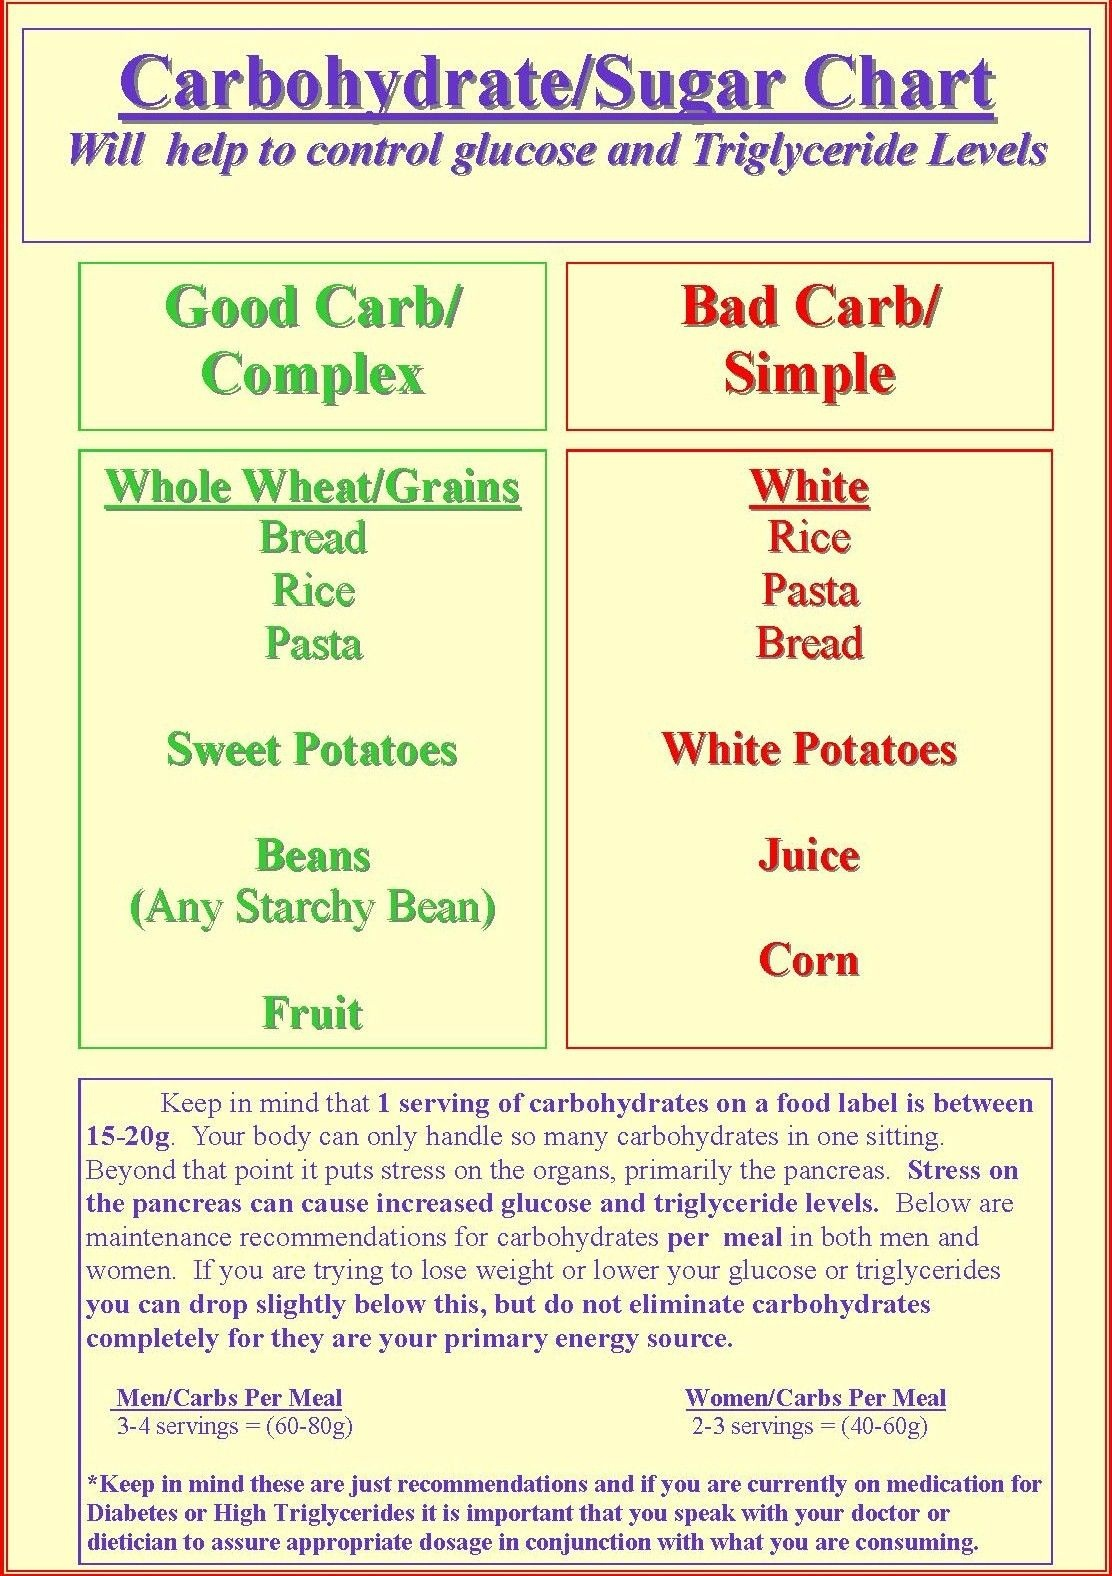 Free Print Carb Counter Chart | Carbohydrate/sugar Chart | Low Carb - Free Printable Carb Counter Chart